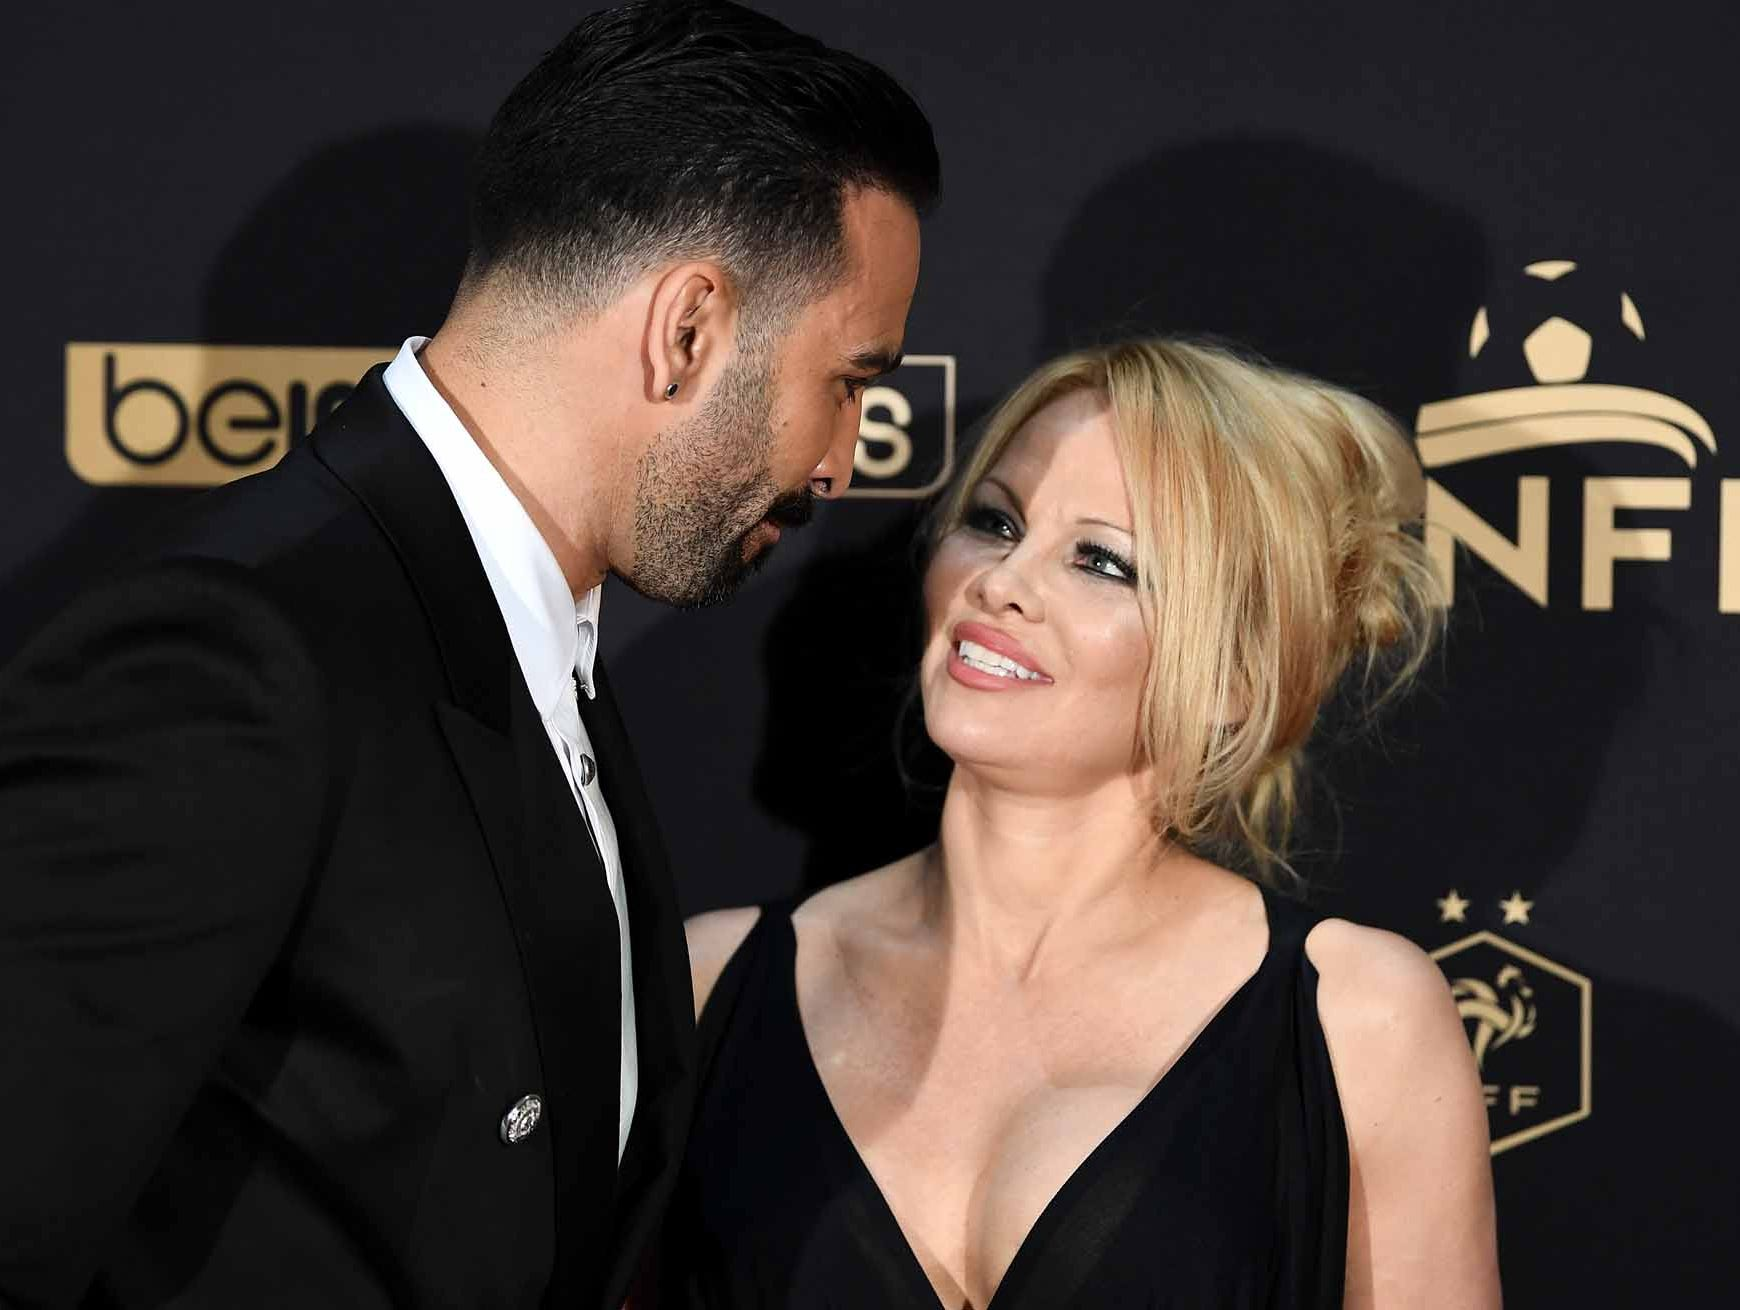 Marseille's defender Adil Rami, left, and Pamela Anderson arrive to take part in a TV show in Paris, as part of the 28th edition of the UNFP (French National Professional Football players Union) trophy ceremony.